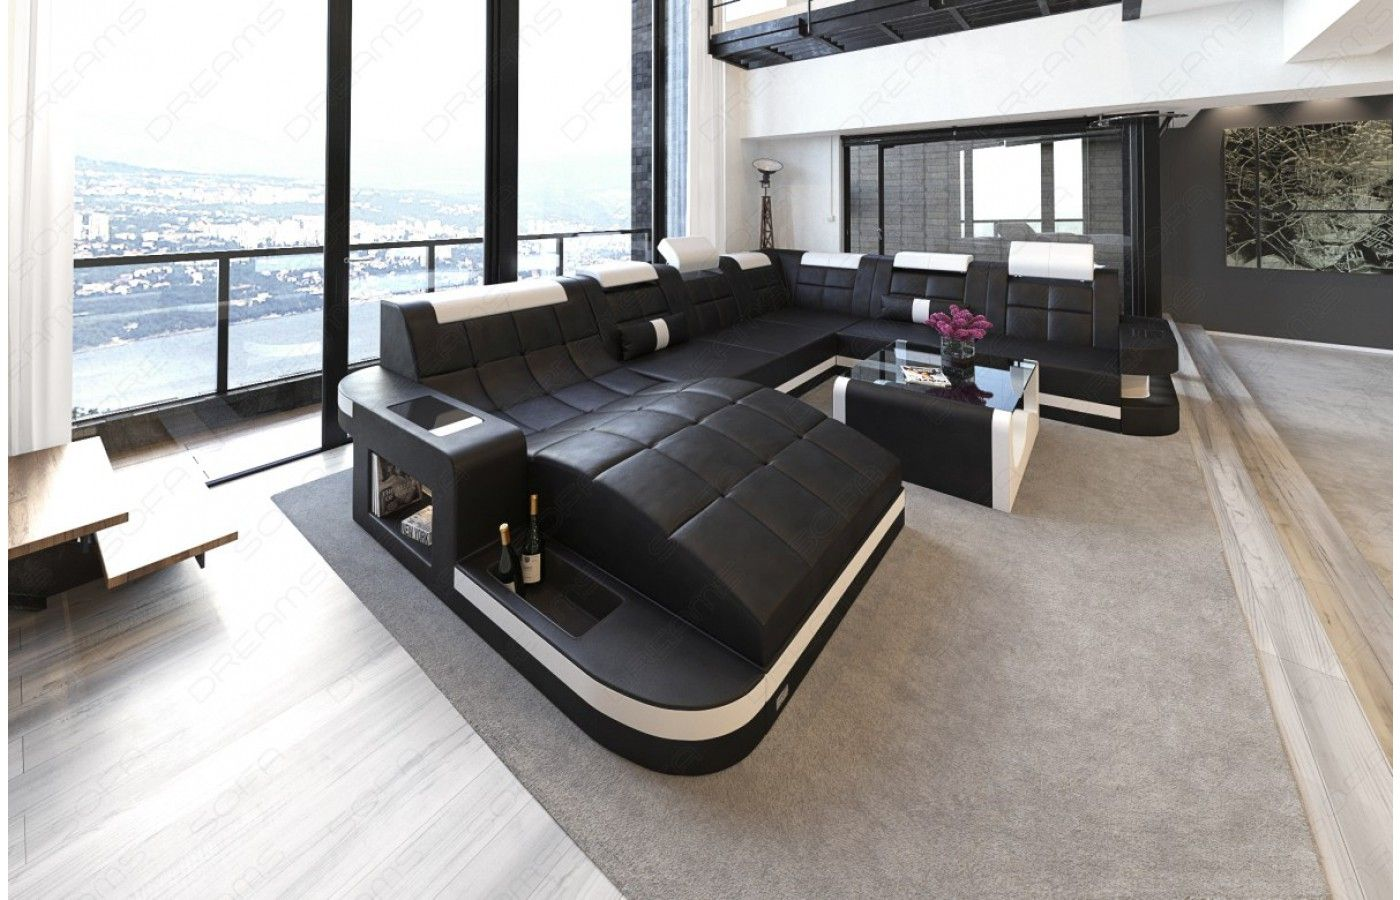 wohnlandschaft design g nstig. Black Bedroom Furniture Sets. Home Design Ideas